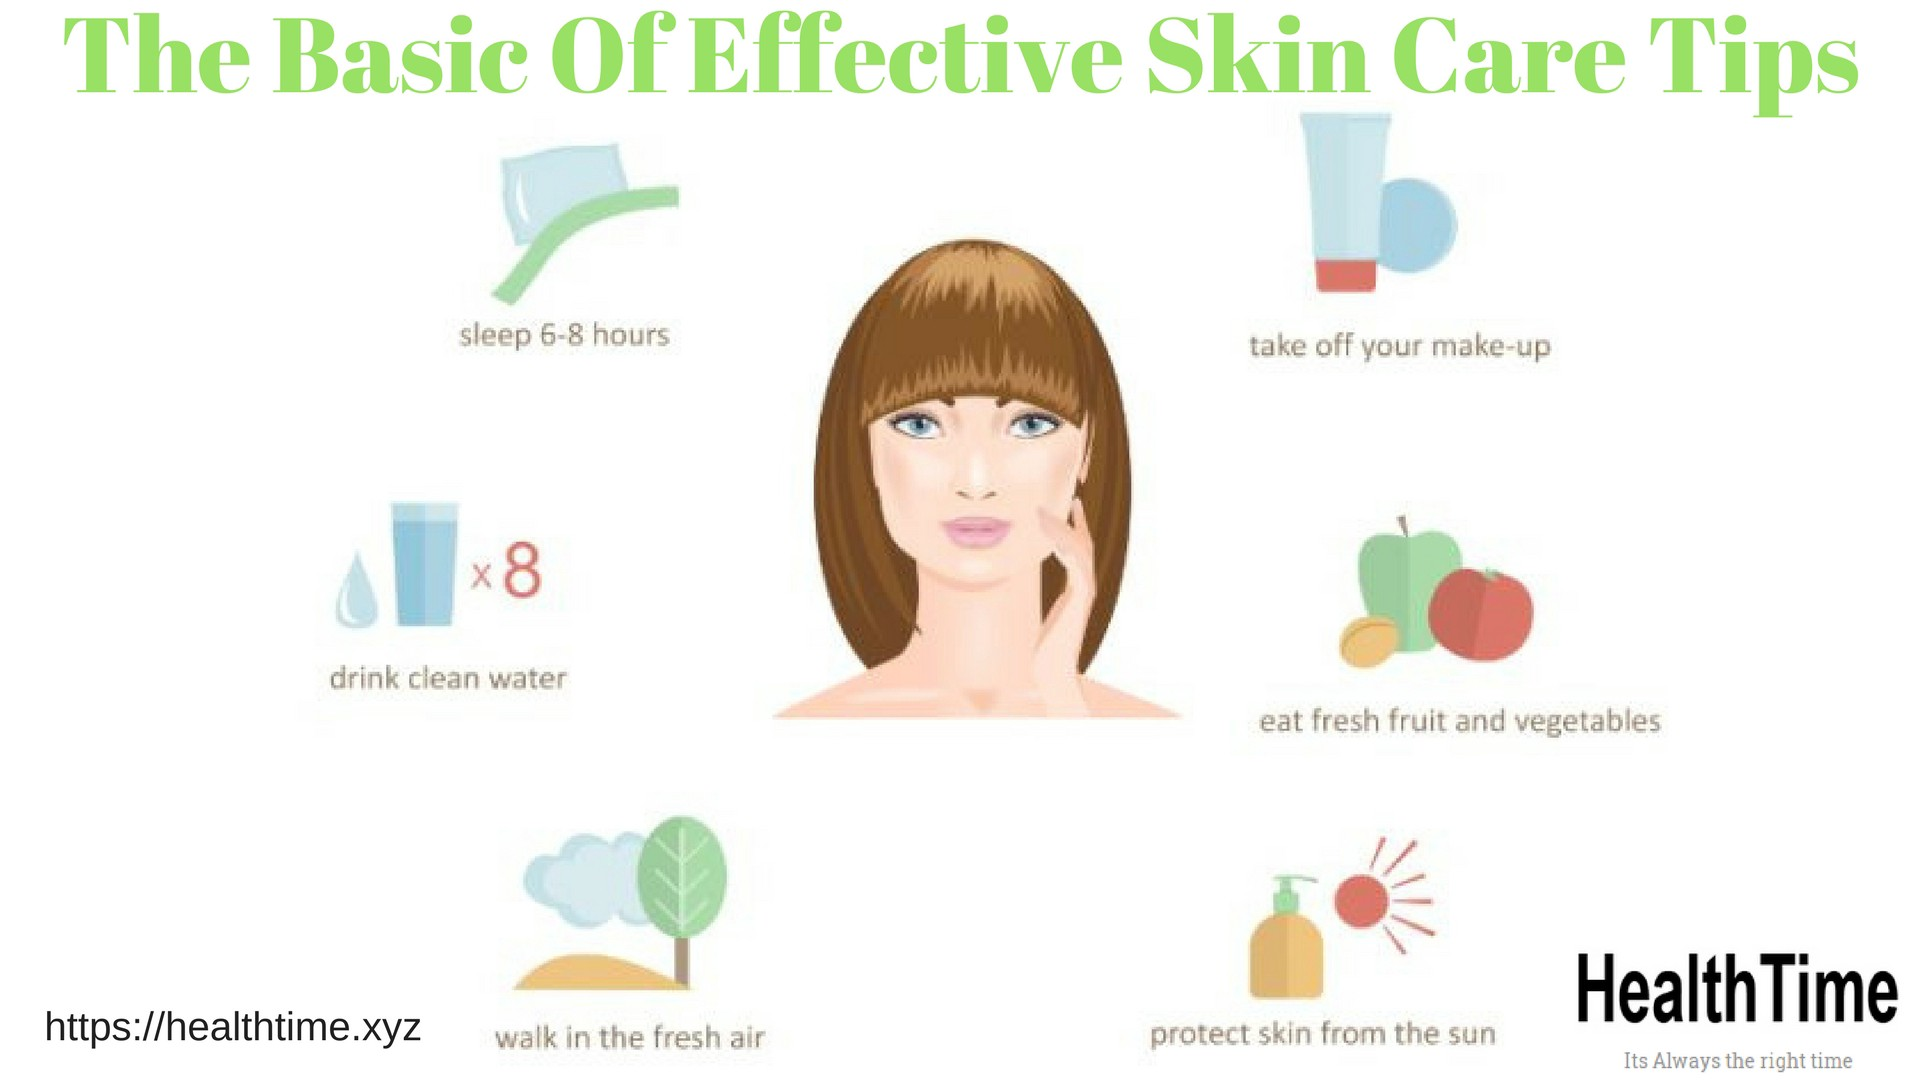 The Basic Of Effective Skin Care Tips  Healthtime  by healthtime